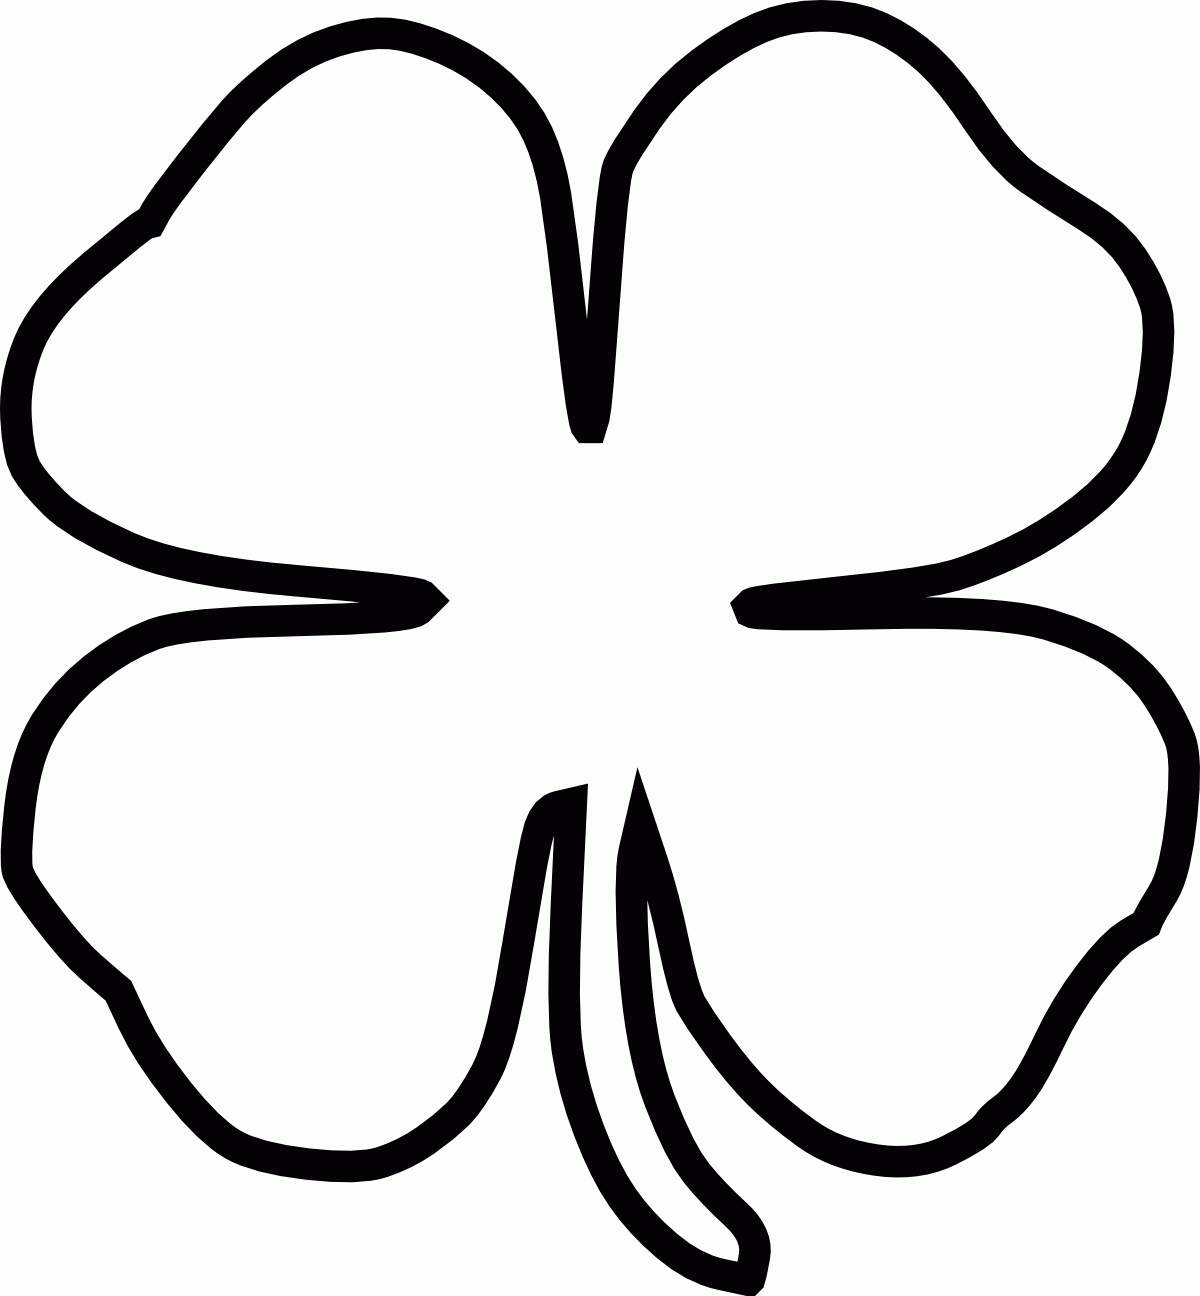 Four Leaf Clover Black And White Clipart 51 For Amazing